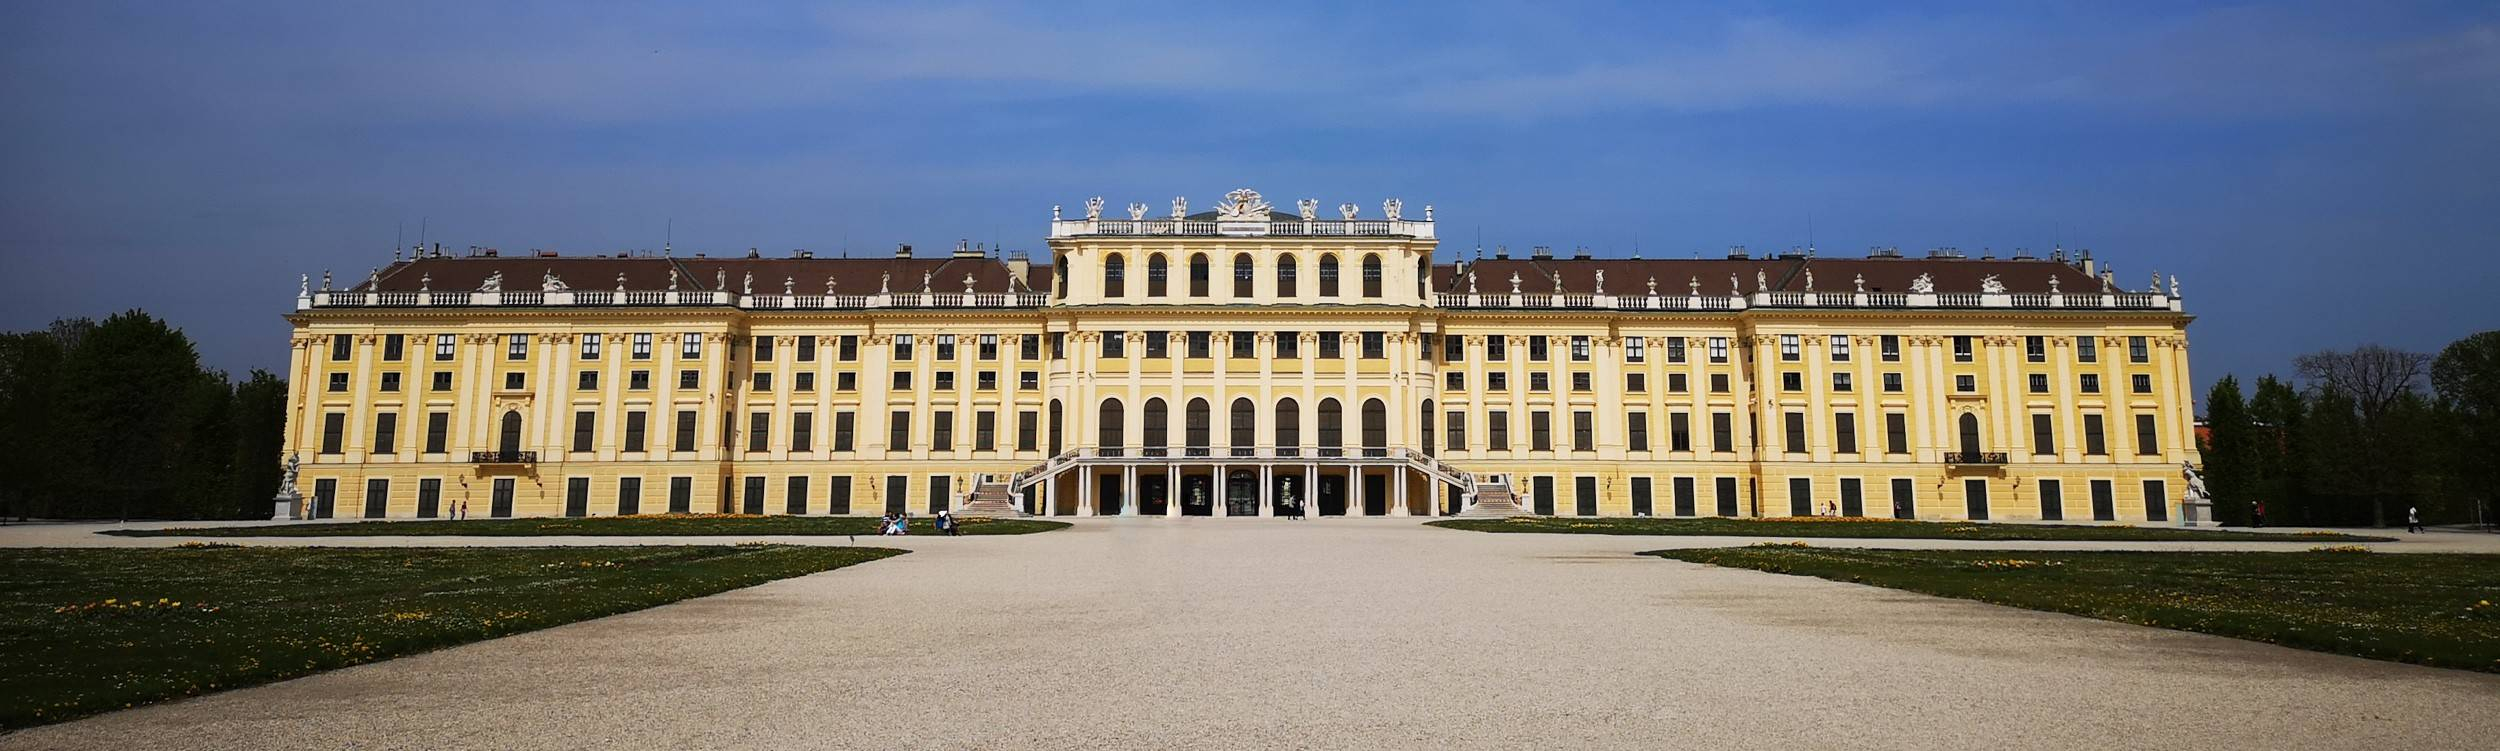 The inner side of Schönbrunn Palace, Vienna